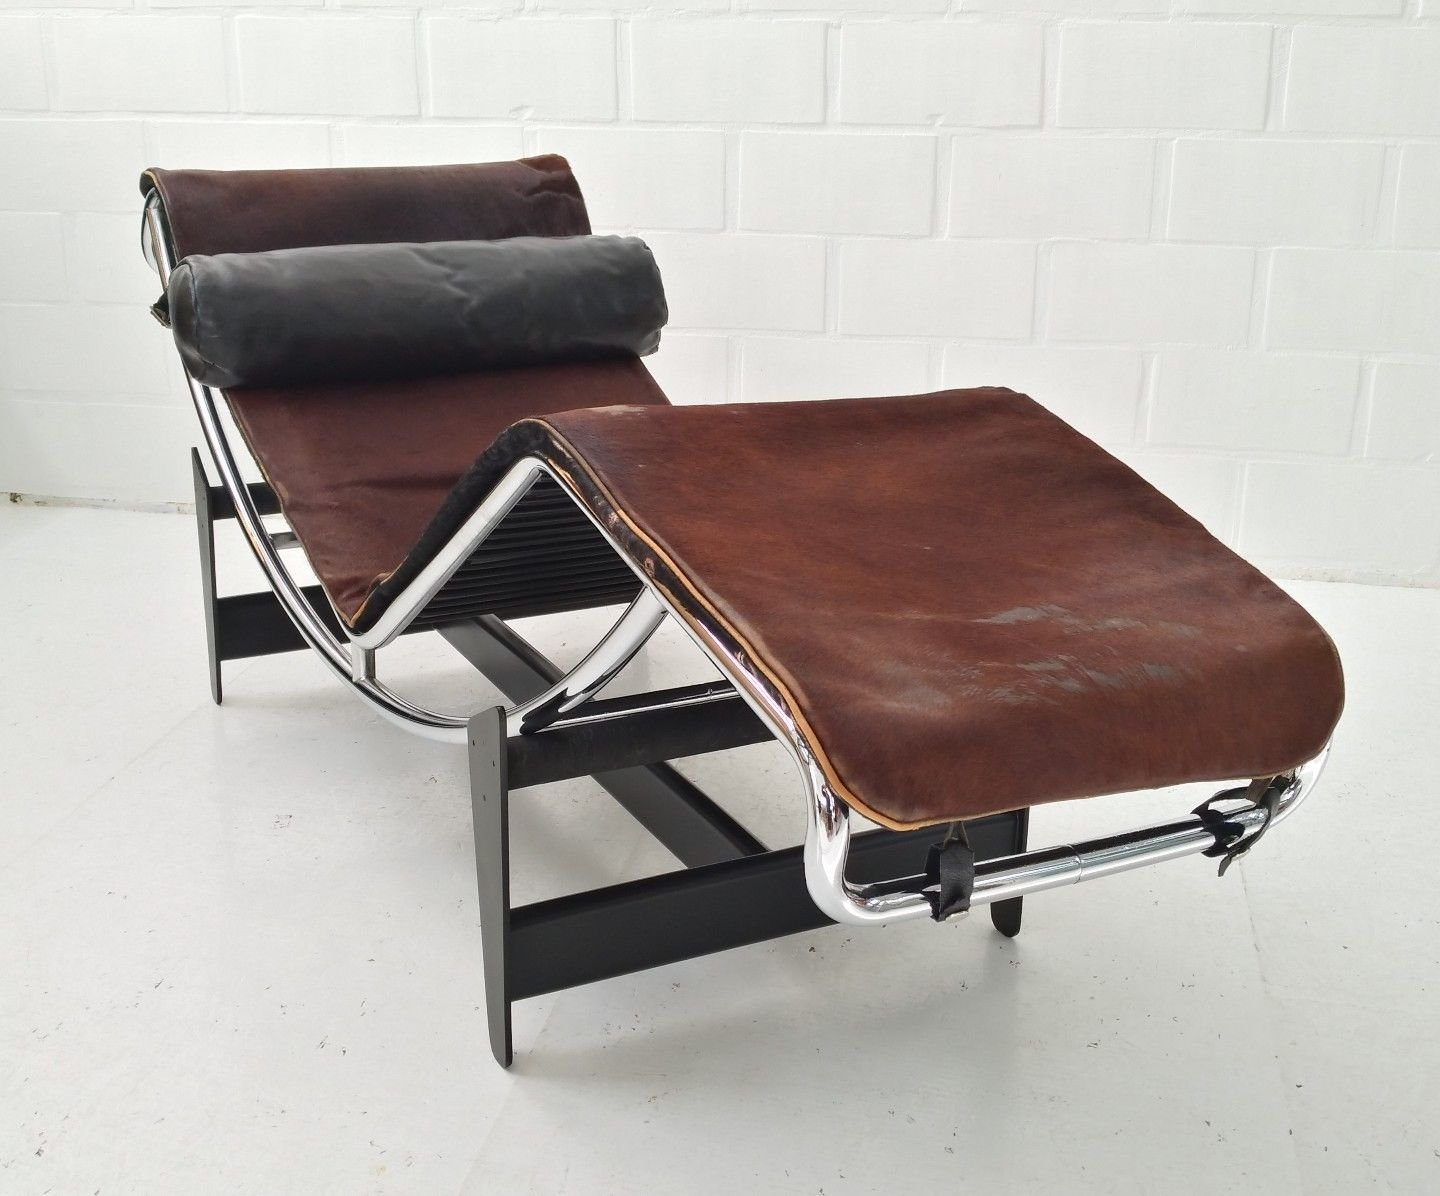 Lc4 chaise longue by le corbusier charlotte perriand for Chaise lounge corbusier